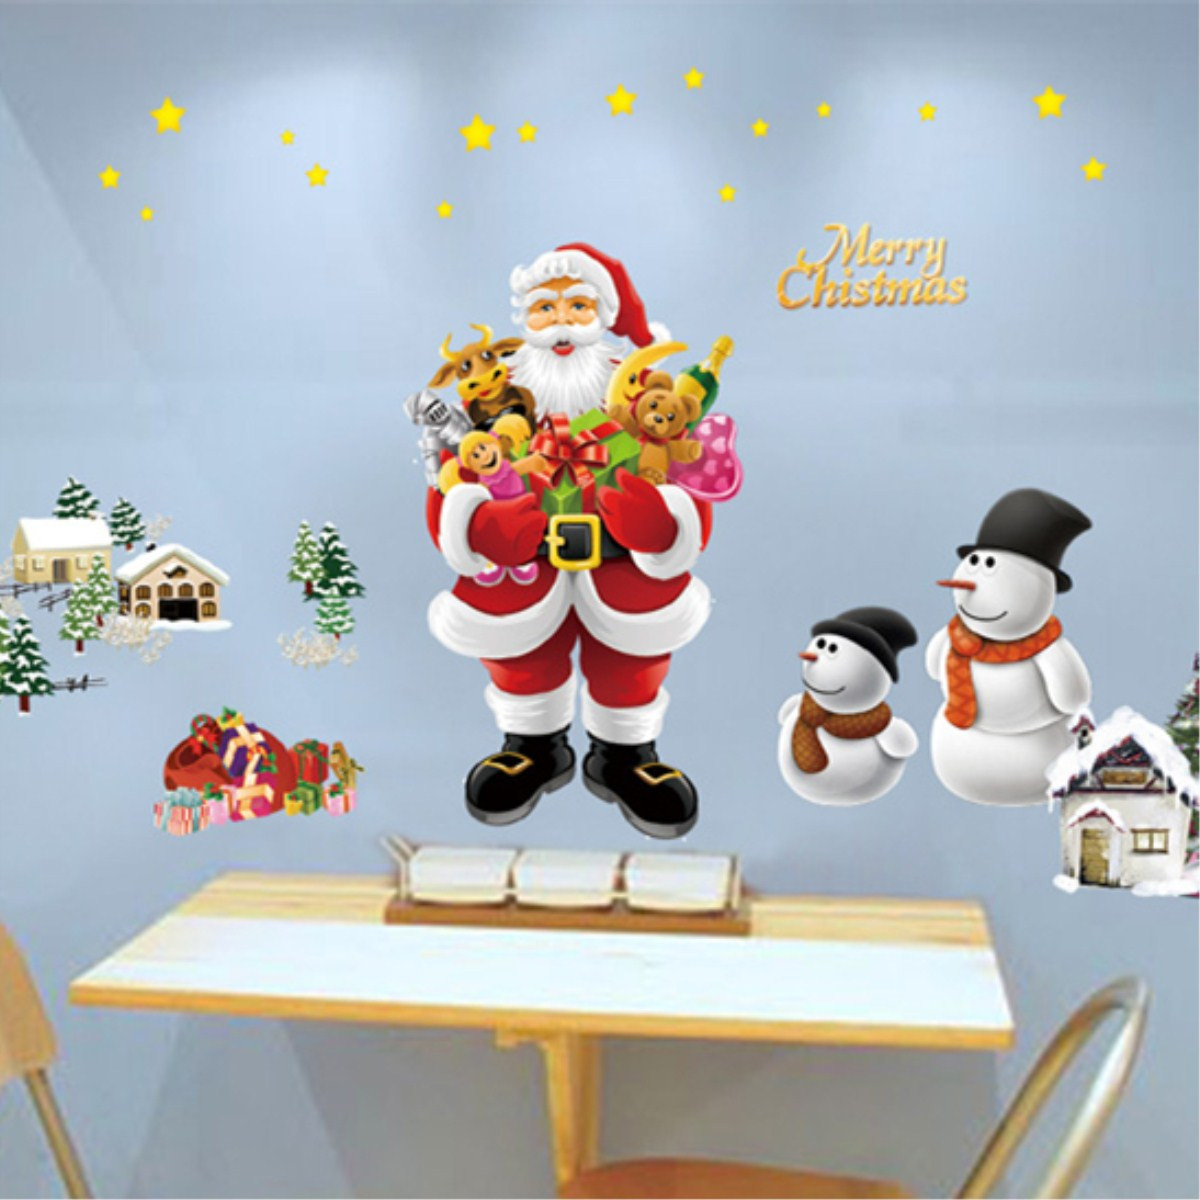 PVC Christmas Removable Santa Claus Reindeer Window Wall Sticker Christmas Home Decor Wall Mural Decals 'Merry Christmas'' Wall Hanging Decor